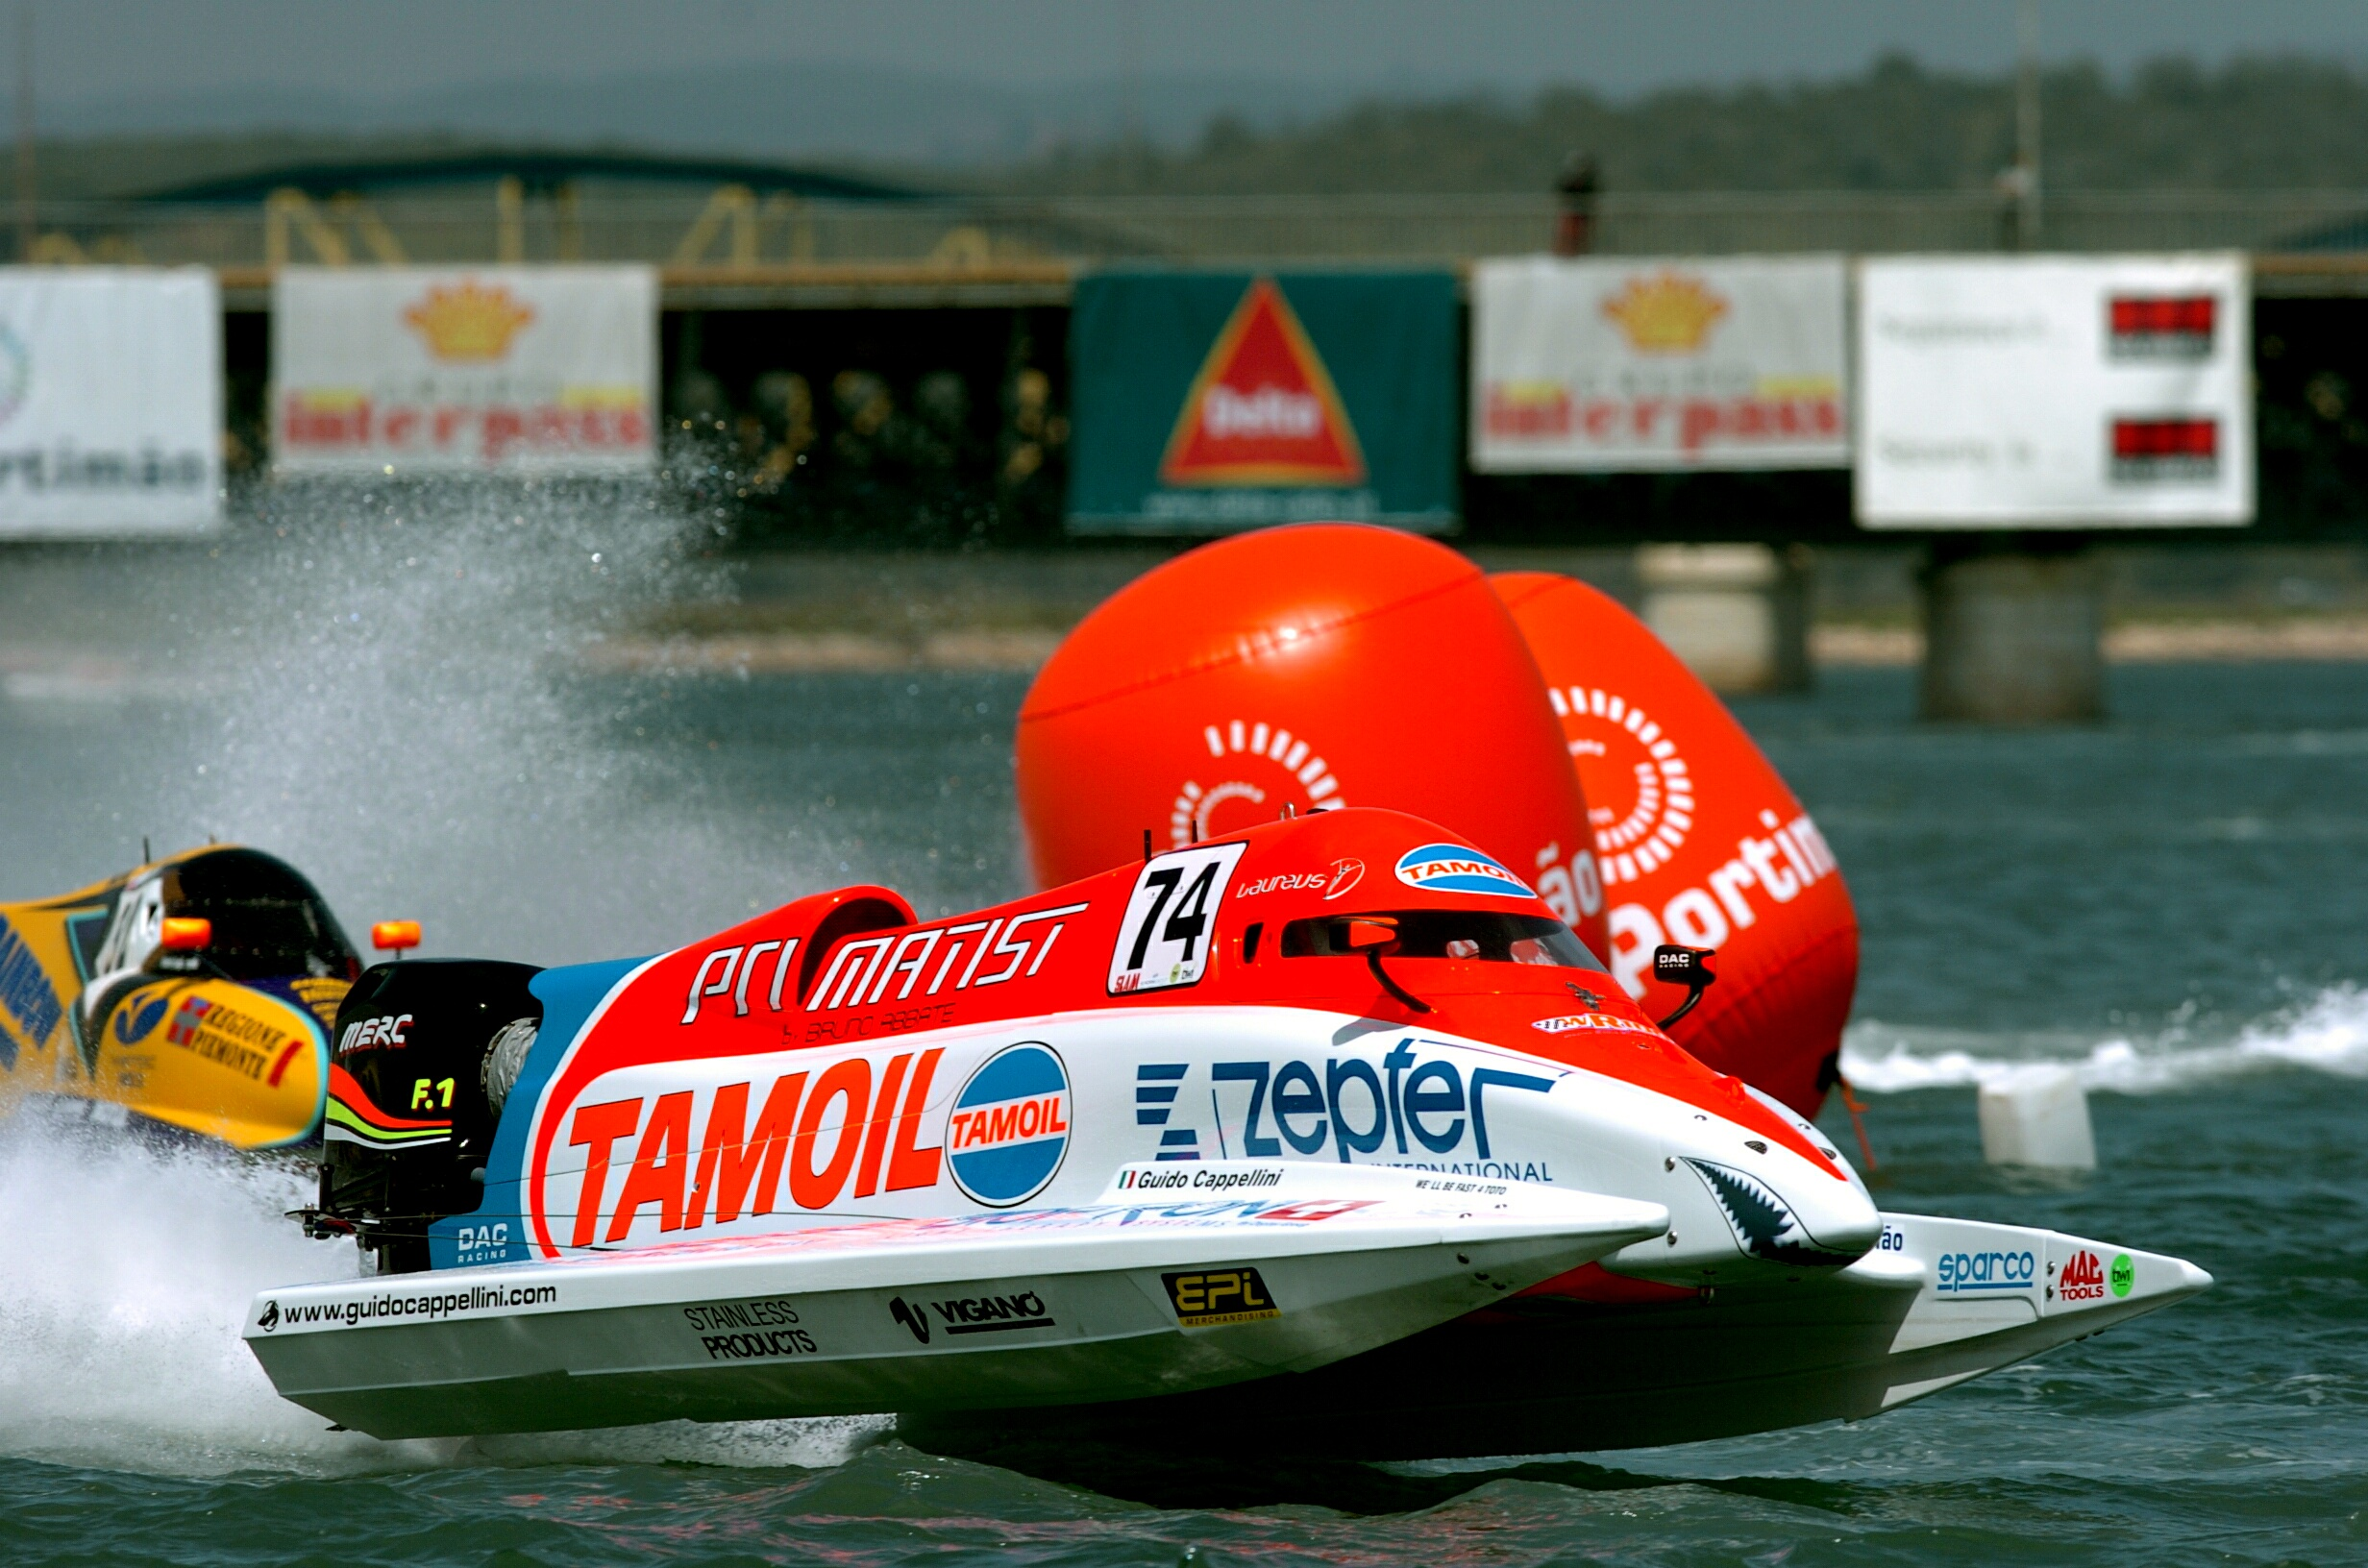 Portimao - Portugal - 3 May, 2008 - Timed Trials for the Portugal Grand Prix on Rio Arade: Guido Cappellini Tamoil Team. This GP is the 2th leg of the UIM F1 Powerboat World Championship 2008. Picture by Vittorio Ubertone/Idea Marketing.